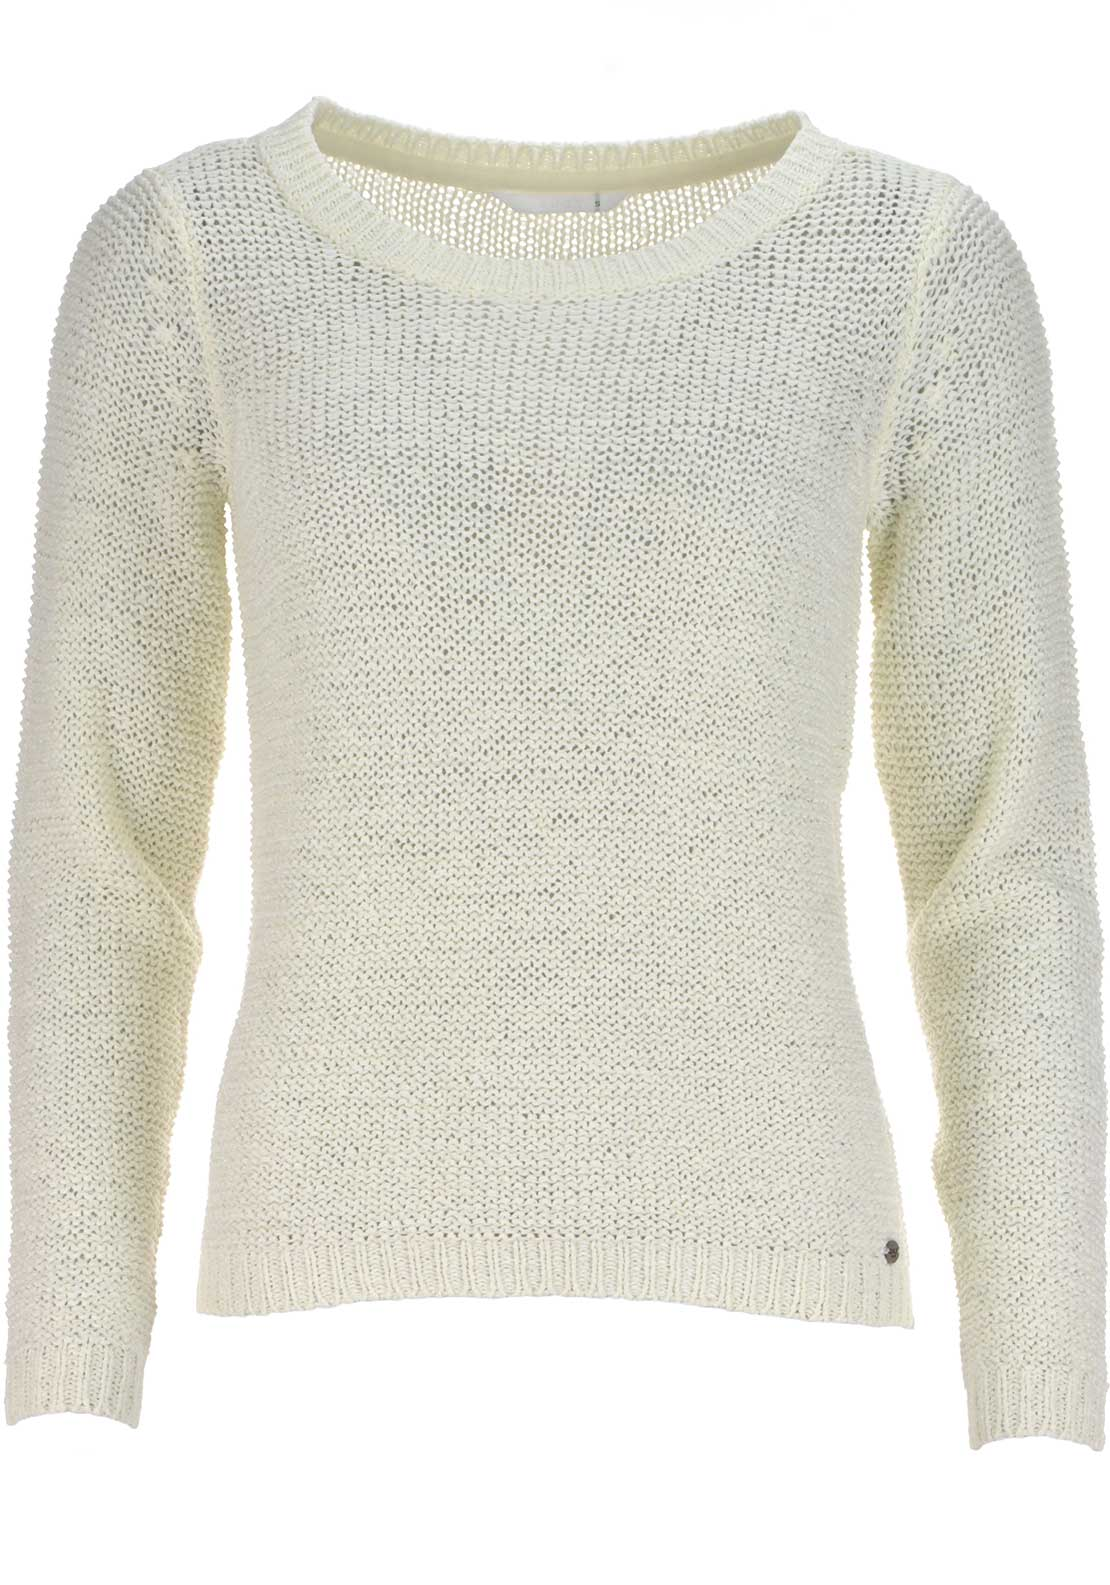 Only Geena Knitted Pullover Jumper, Cloud Dancer